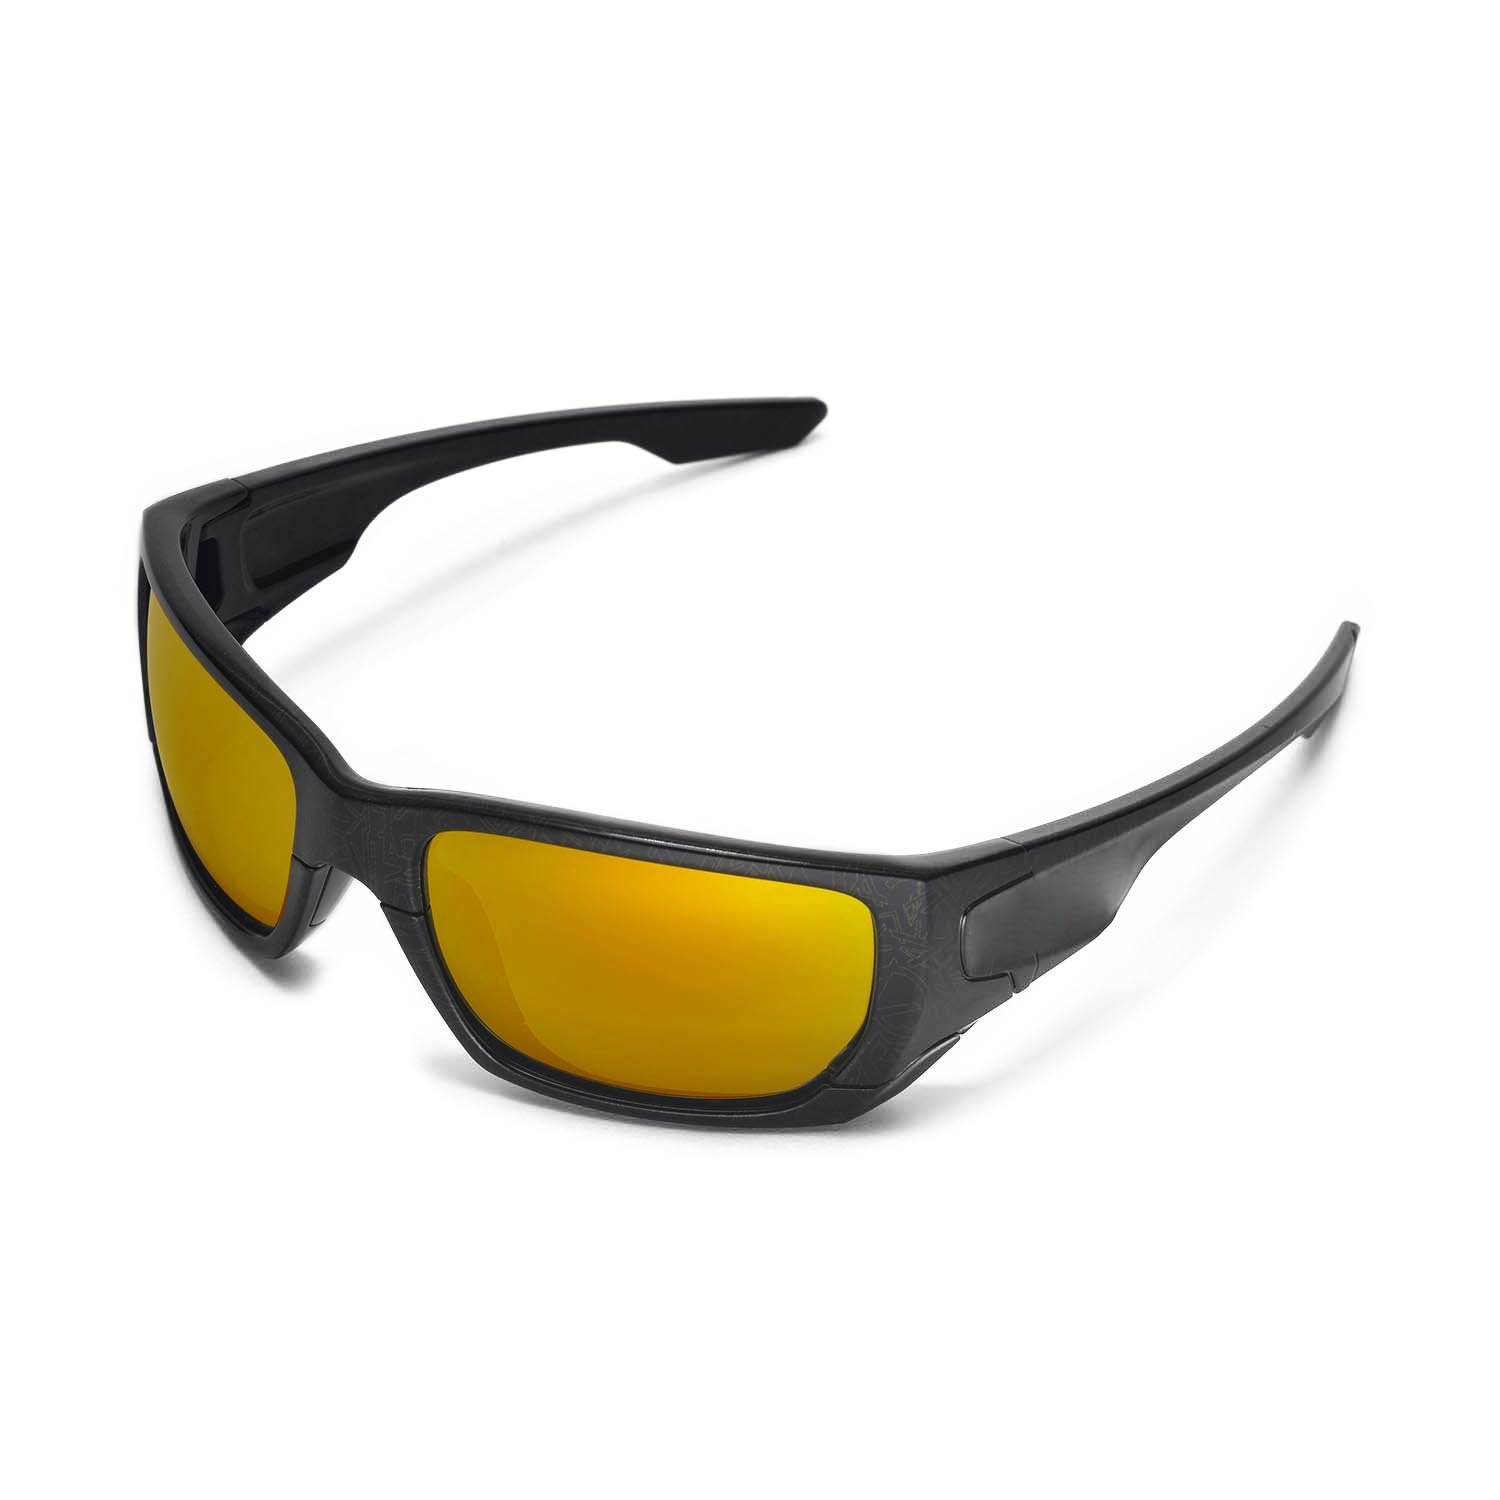 9a1d8400d9597 Amazon.com   Walleva Replacement Lenses for Oakley Style Switch Sunglasses  - 9 Options Available (24K Gold Mirror Coated - Polarized)   Sports    Outdoors